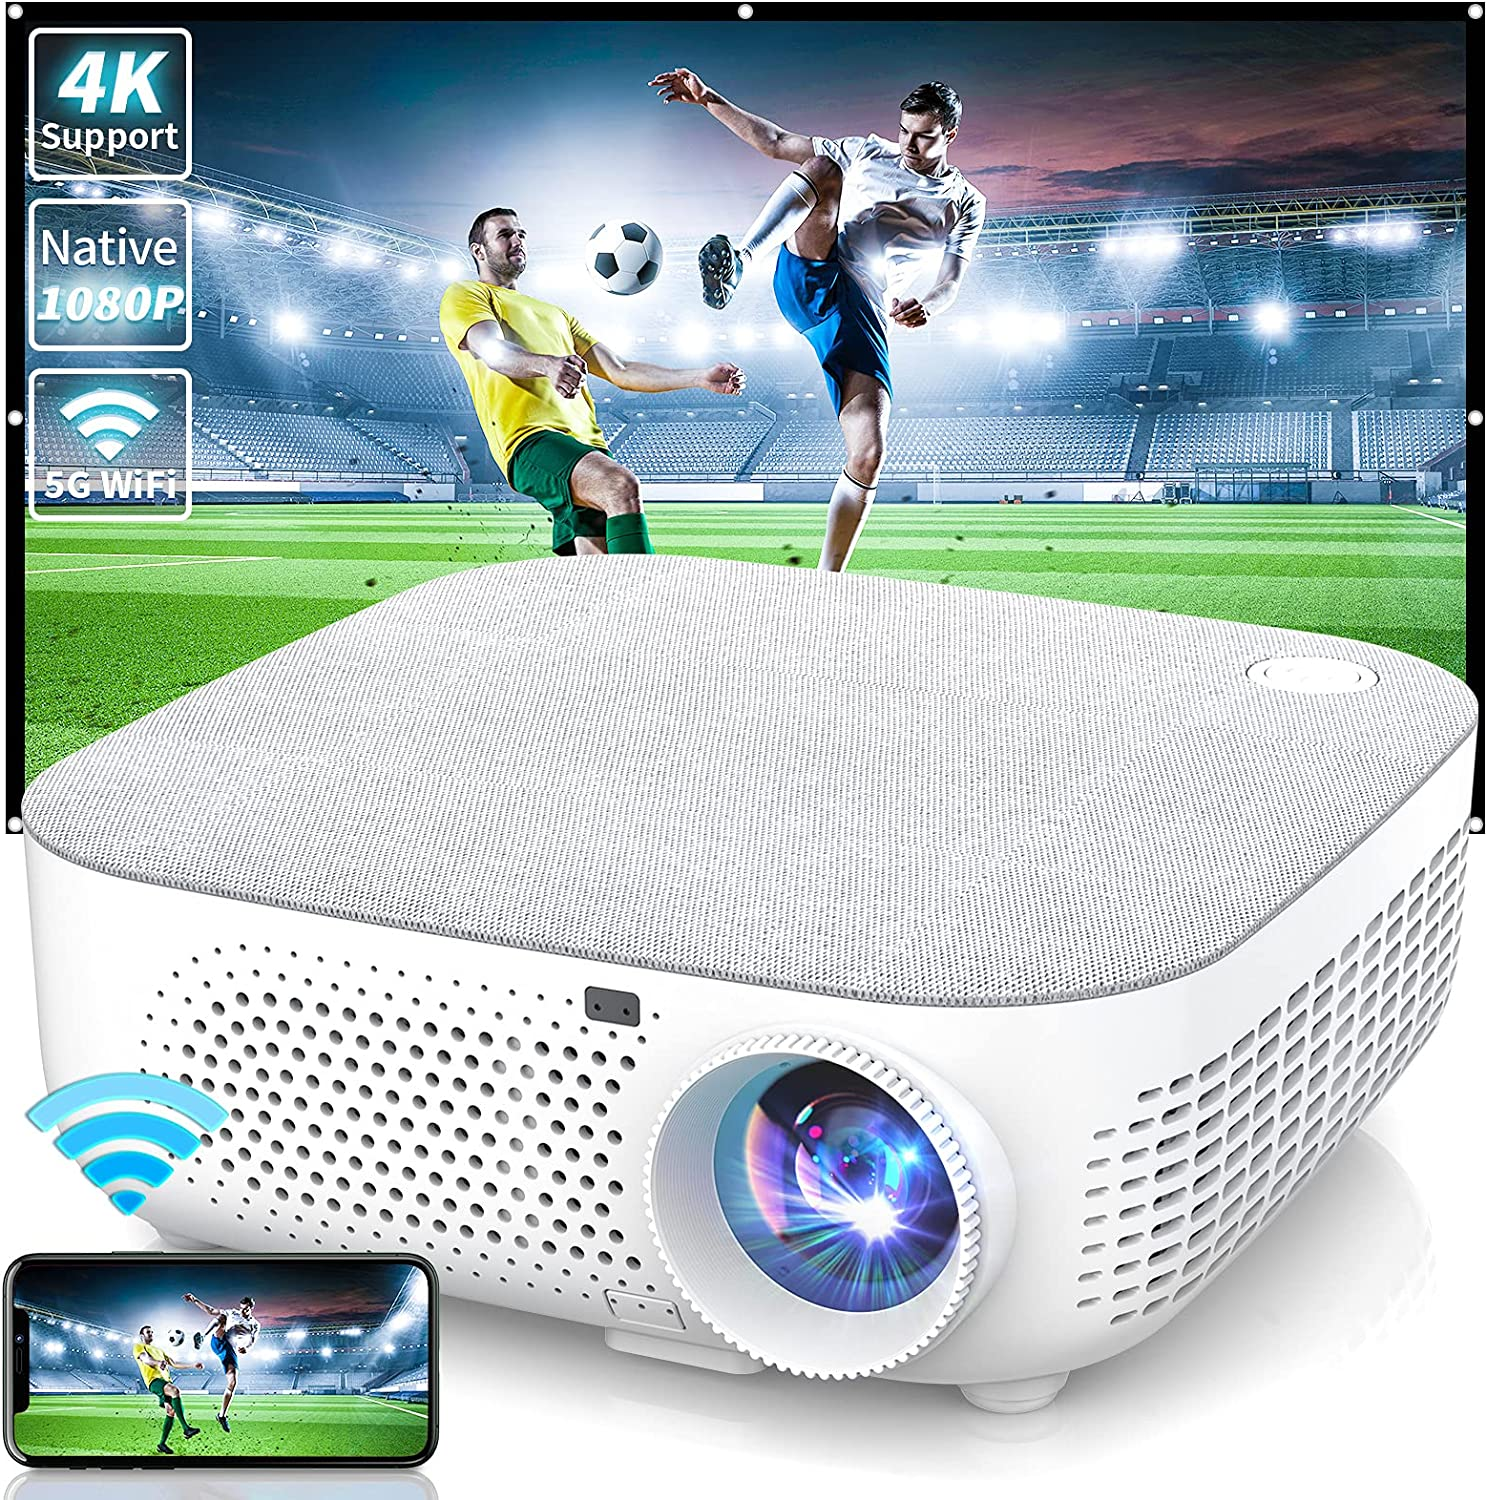 WISELAZER Outdoor Movie Projector 4K,Native 1080P Ultra HD 7500 Lumen Projectors,Dust-Proof, 5G WiFi Video Home Theater Projector Compatible with Smartphone/PC/TV Box/HDMI/USB.